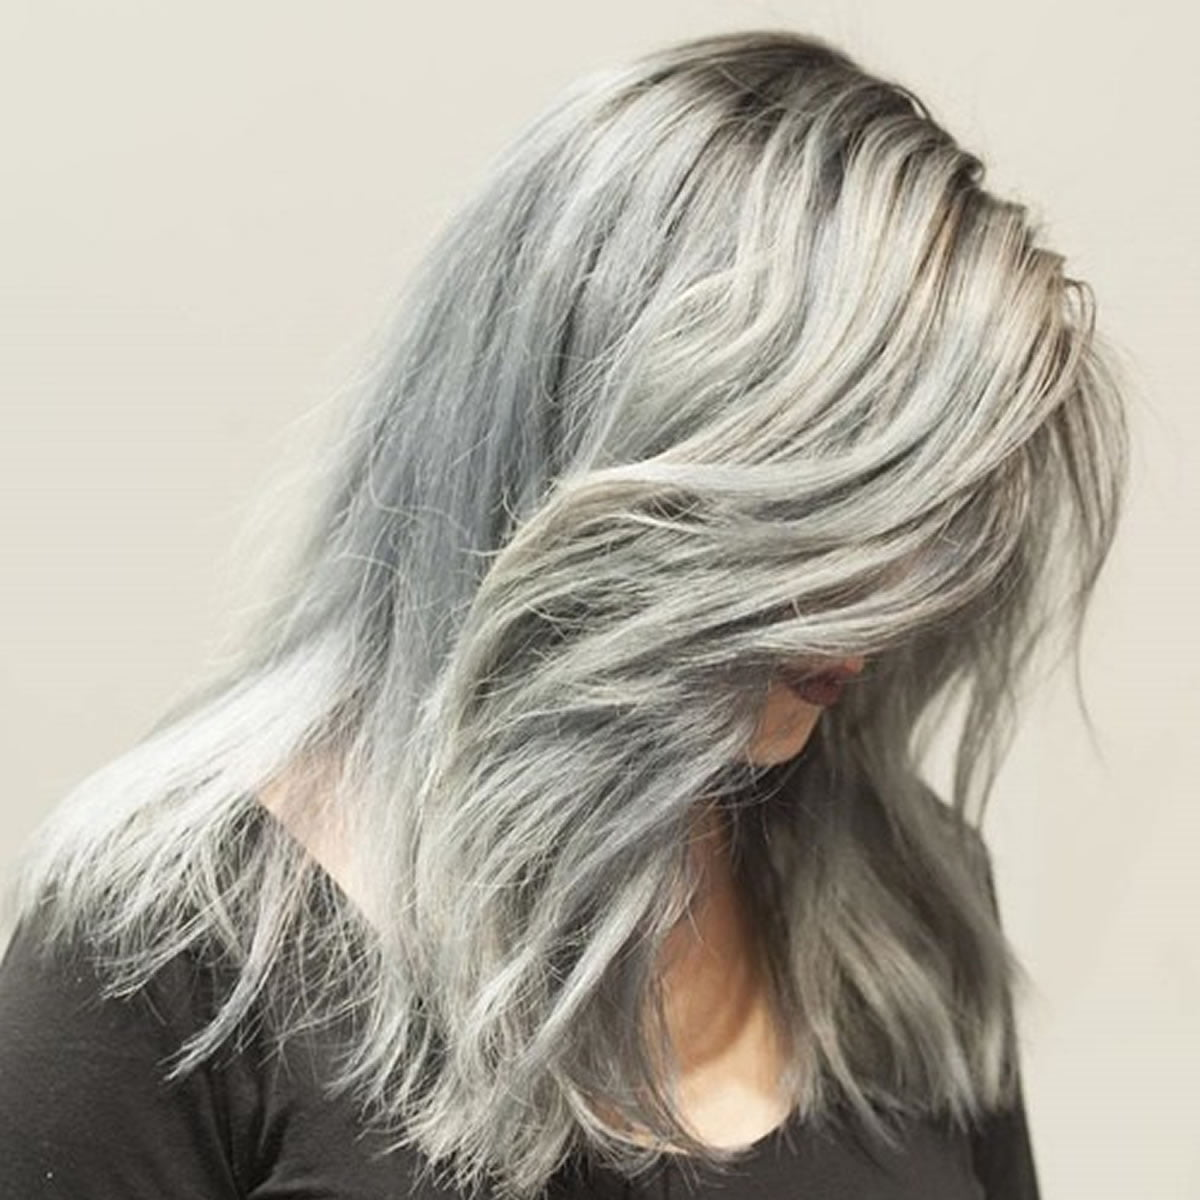 grey hair trend – 20 glamorous hairstyles for women 2018 – hairstyles